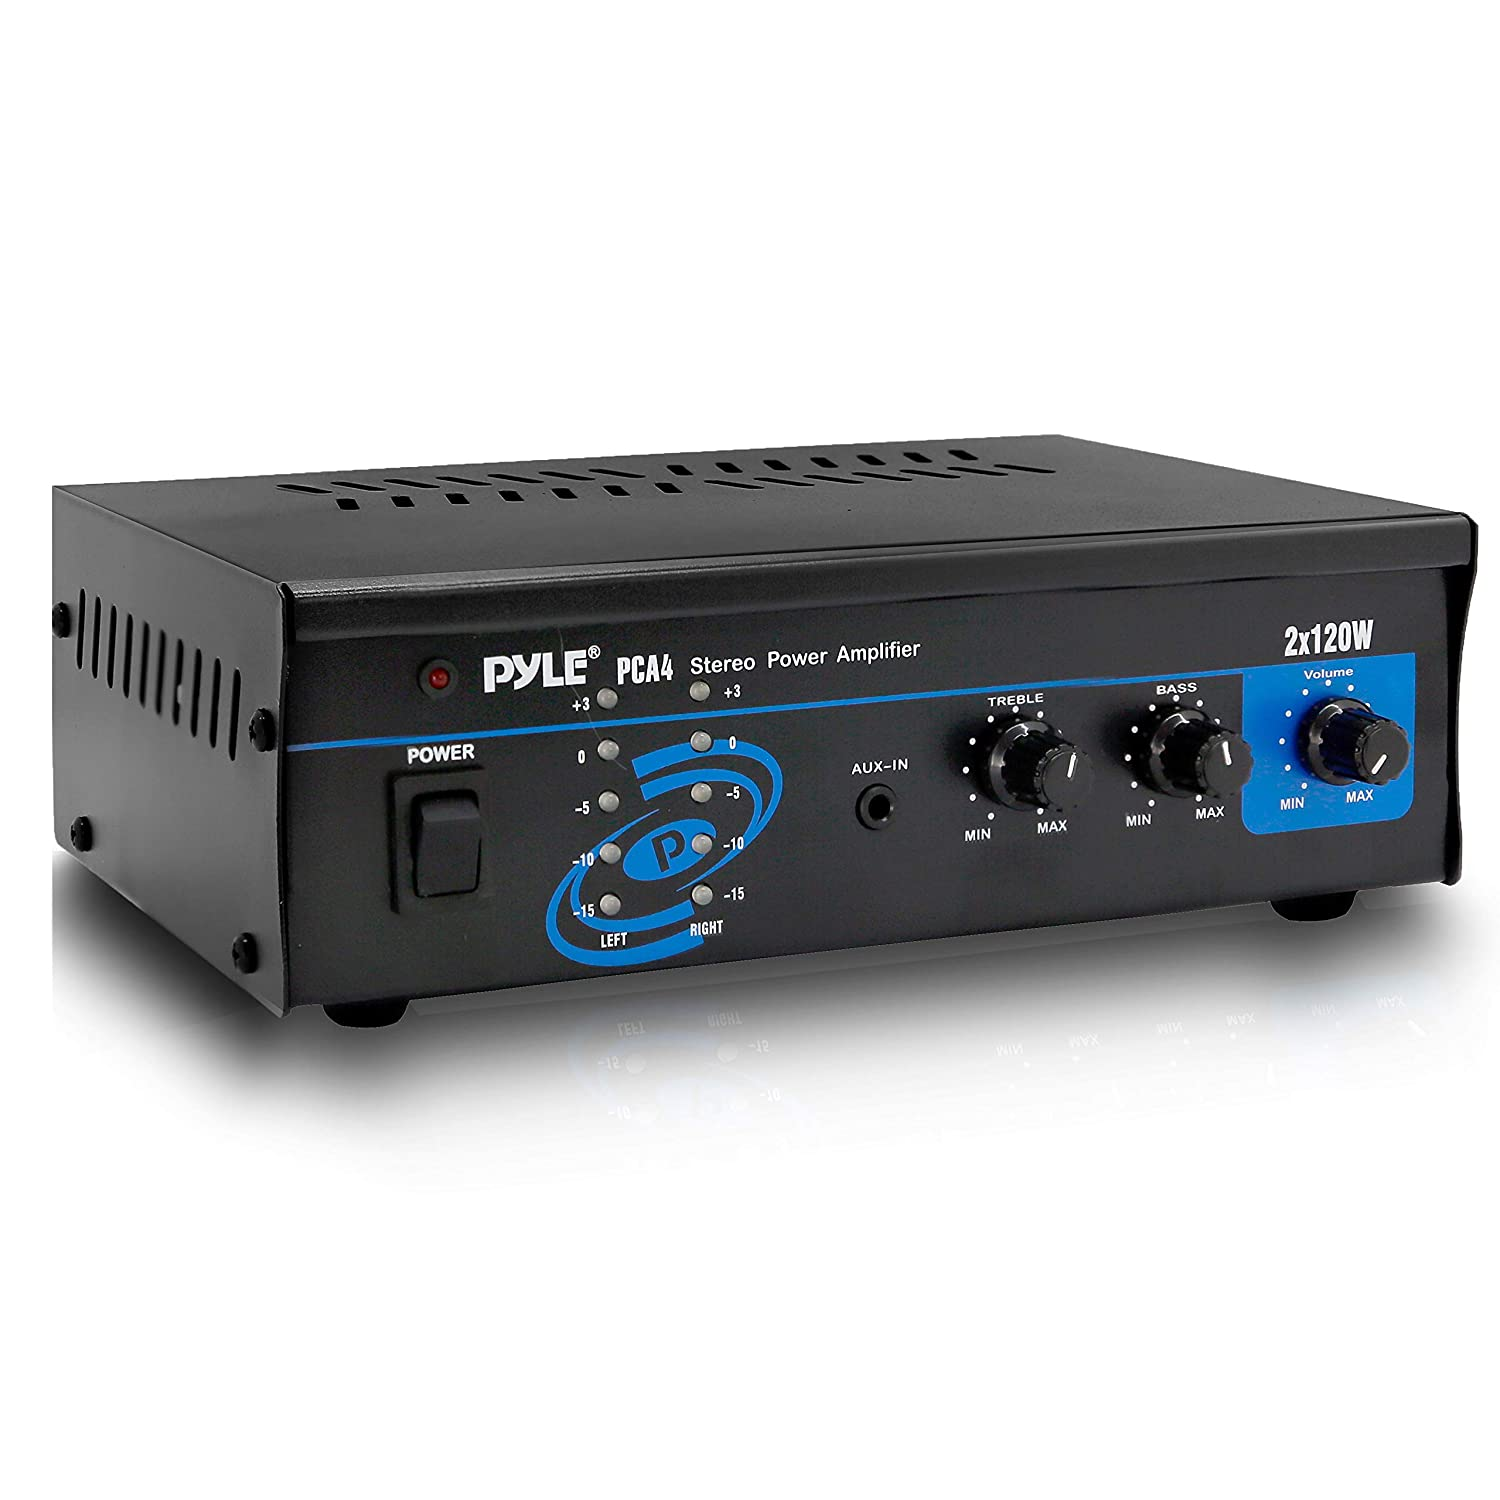 Pyle 2x120 Watt Home Audio Speaker Power Amplifier - Portable Dual Channel Surround Sound Stereo Receiver - for Amplified Subwoofer Speakers, DVD, MP3, iPhone, Computer, Theater Via 3.5mm RCA-PCA4.6